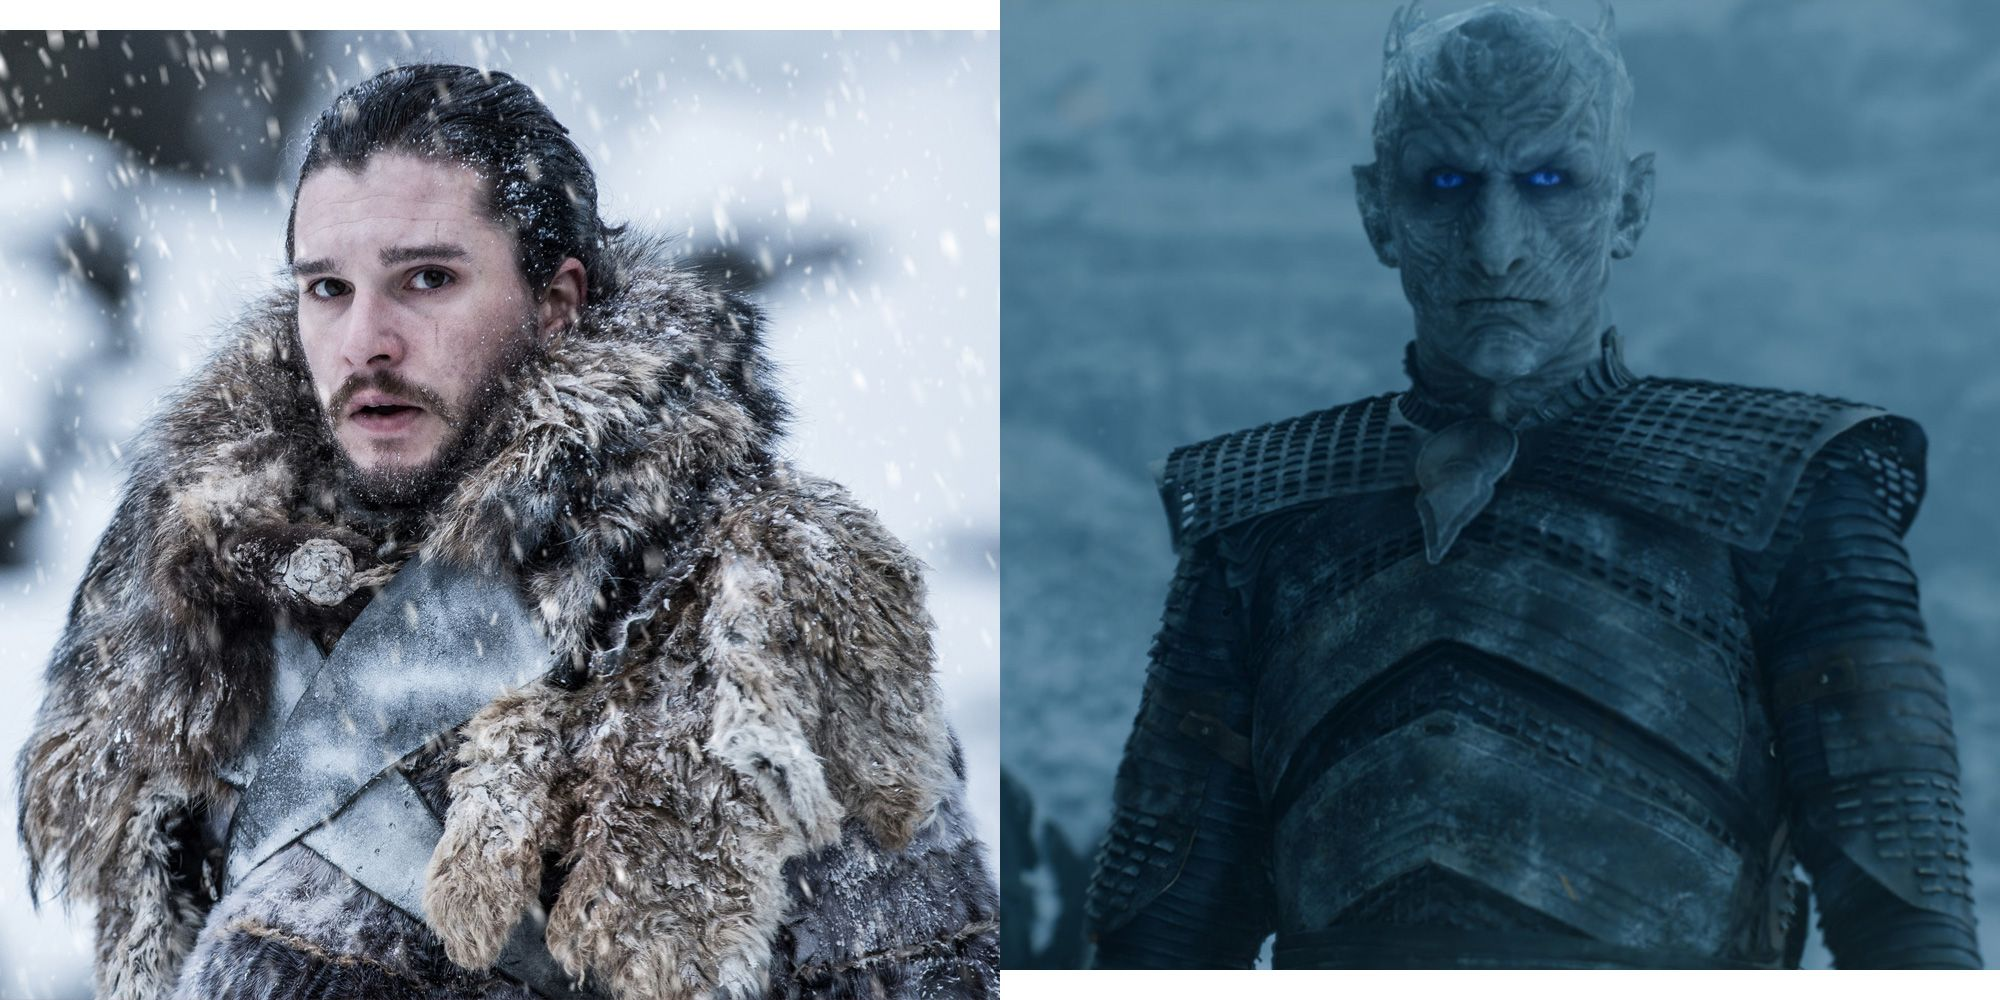 This Incredible Game Of Thrones Theory Will Make You Root For The White Walkers